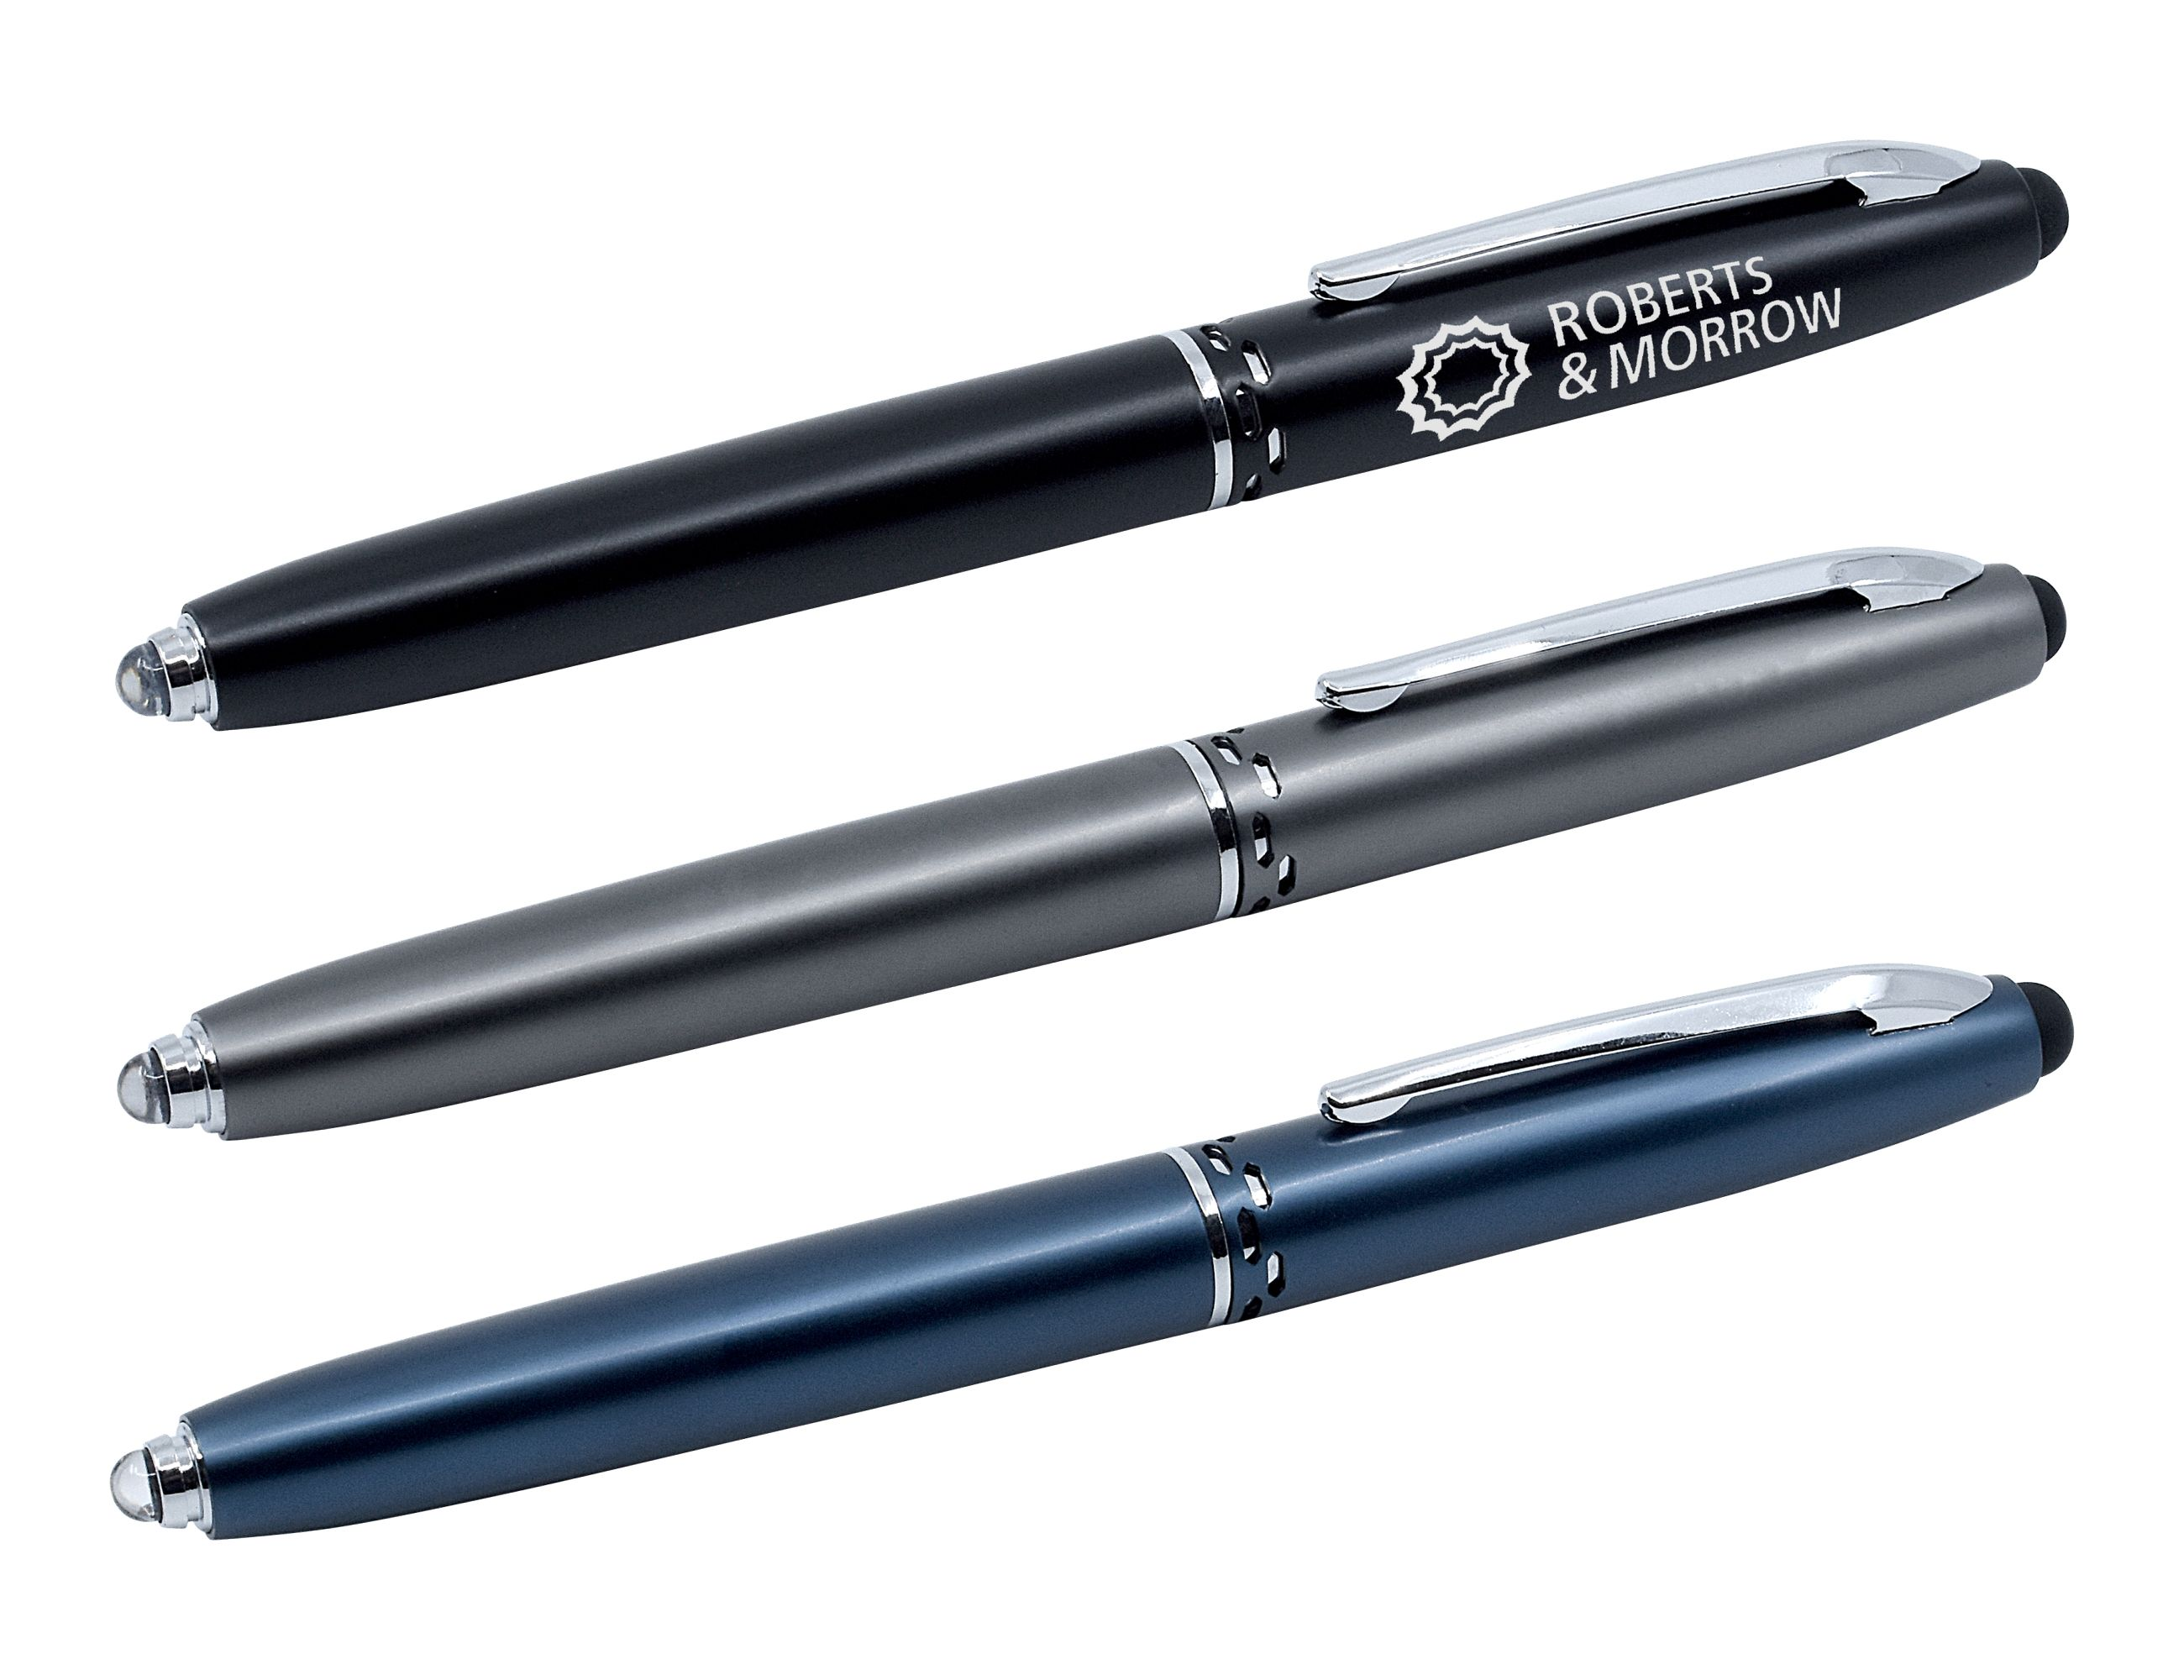 Promotional Product Lux Stylus Pen & Torch